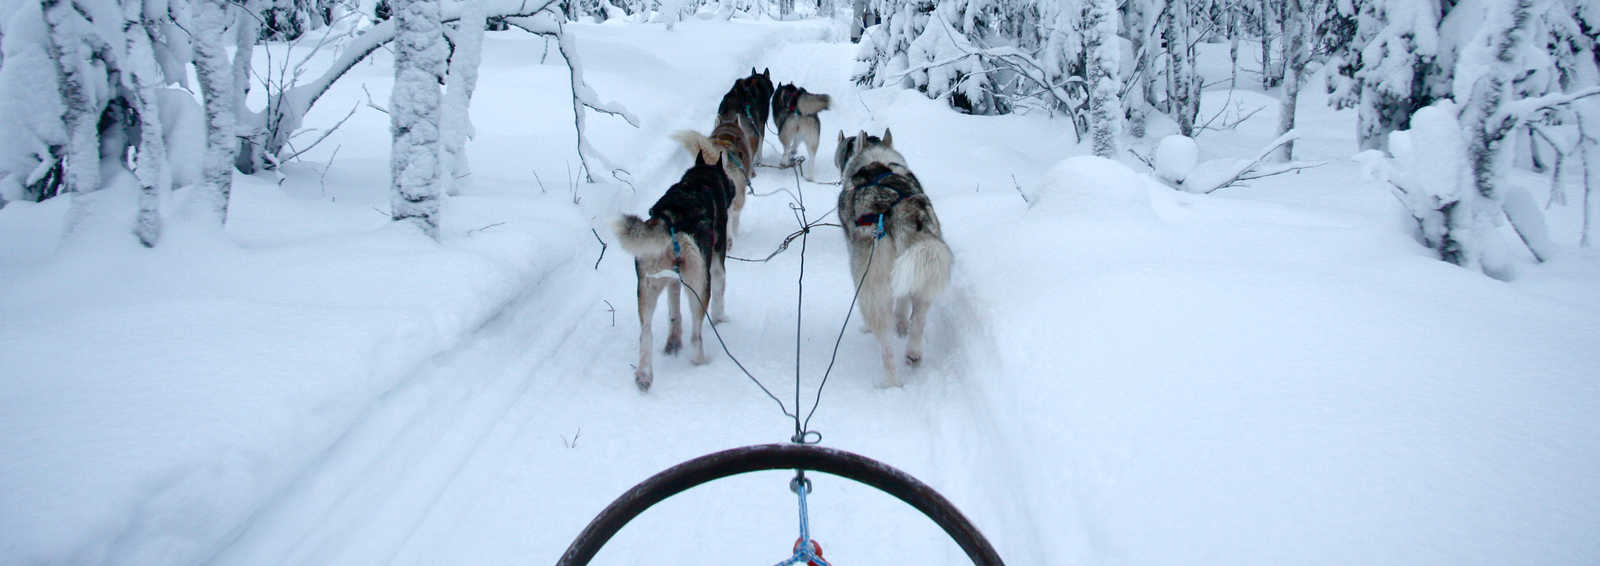 Dogsledding through Riisitunturi National Park, Finland